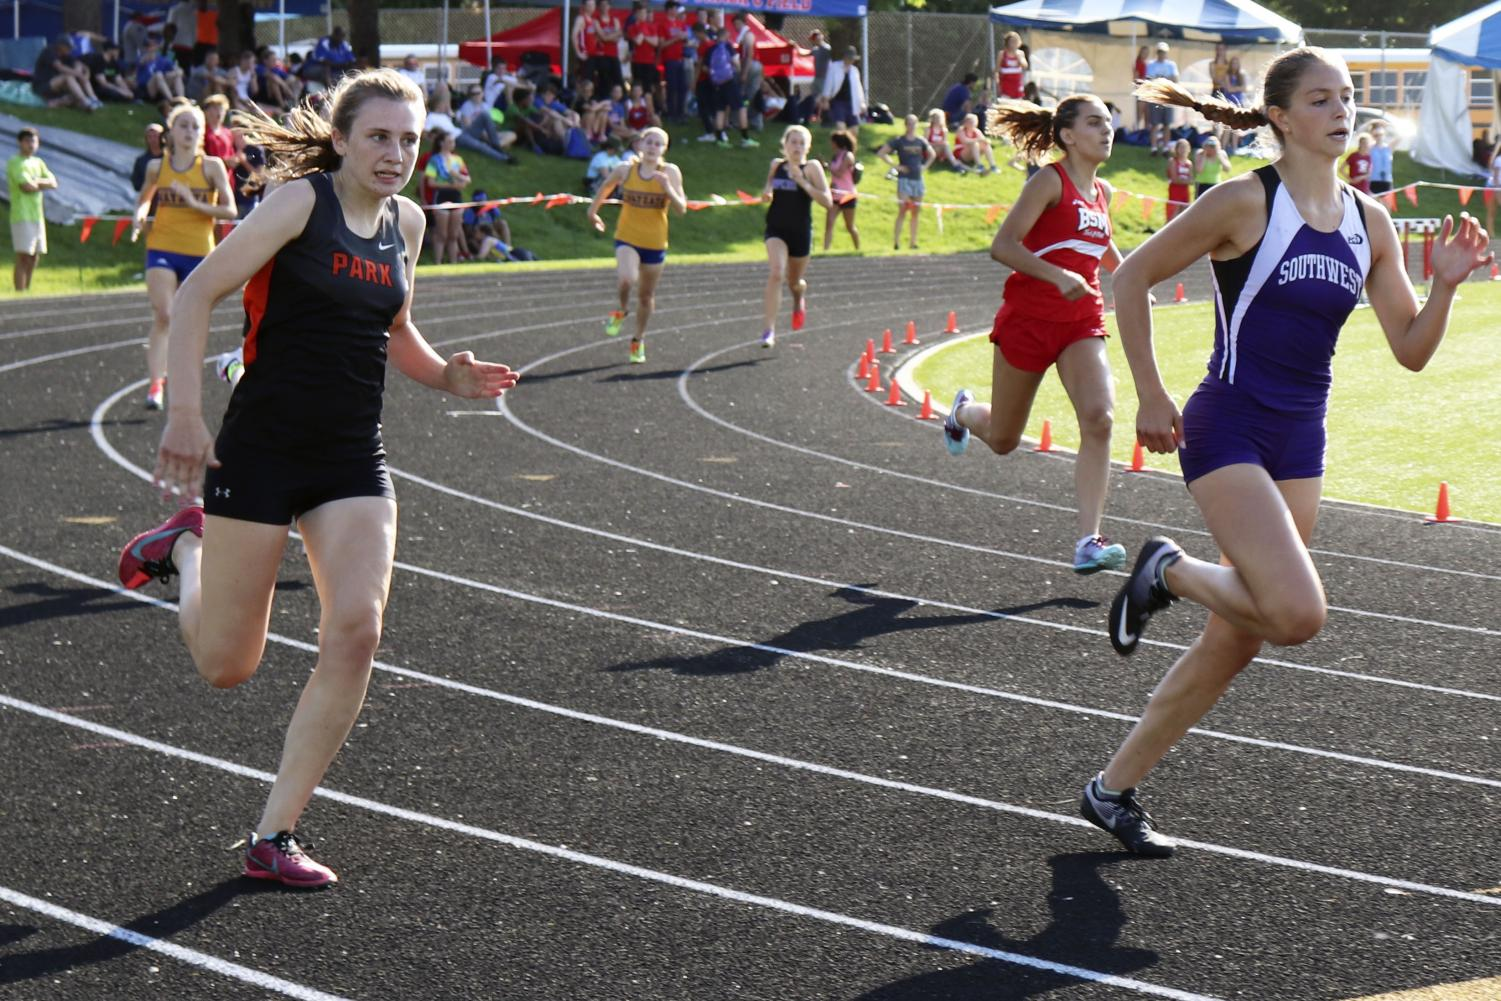 Senior Anna Jenissen races the 200m during the 2018 track and field season.